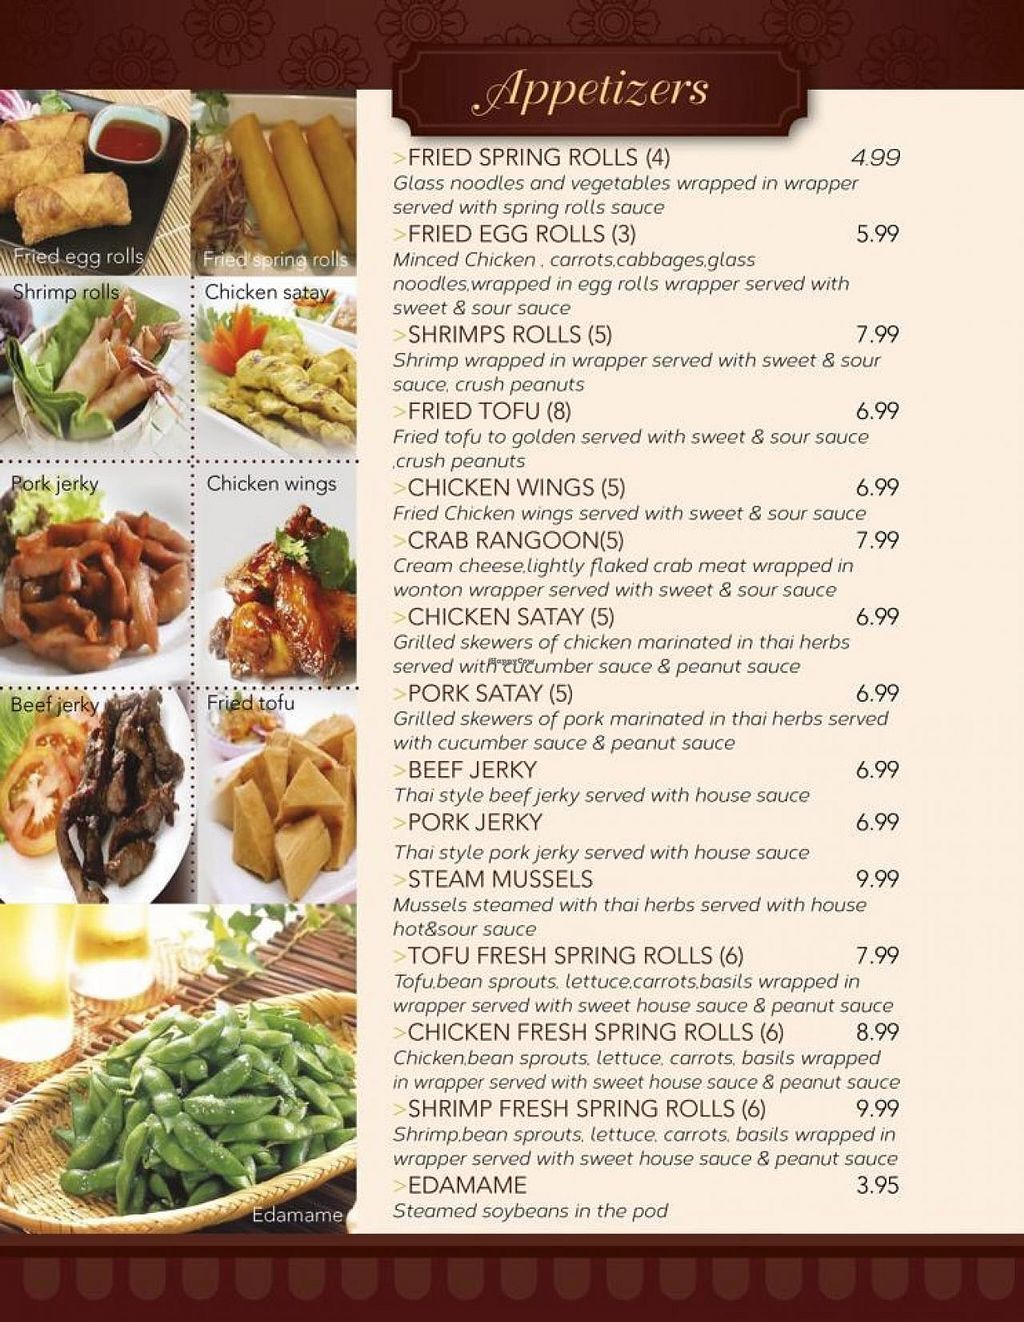 """Photo of REMOVED: Chiangmai Thai Kitchen  by <a href=""""/members/profile/JeedSripakdee"""">JeedSripakdee</a> <br/>Appetizers menu  <br/> June 1, 2015  - <a href='/contact/abuse/image/58954/104457'>Report</a>"""